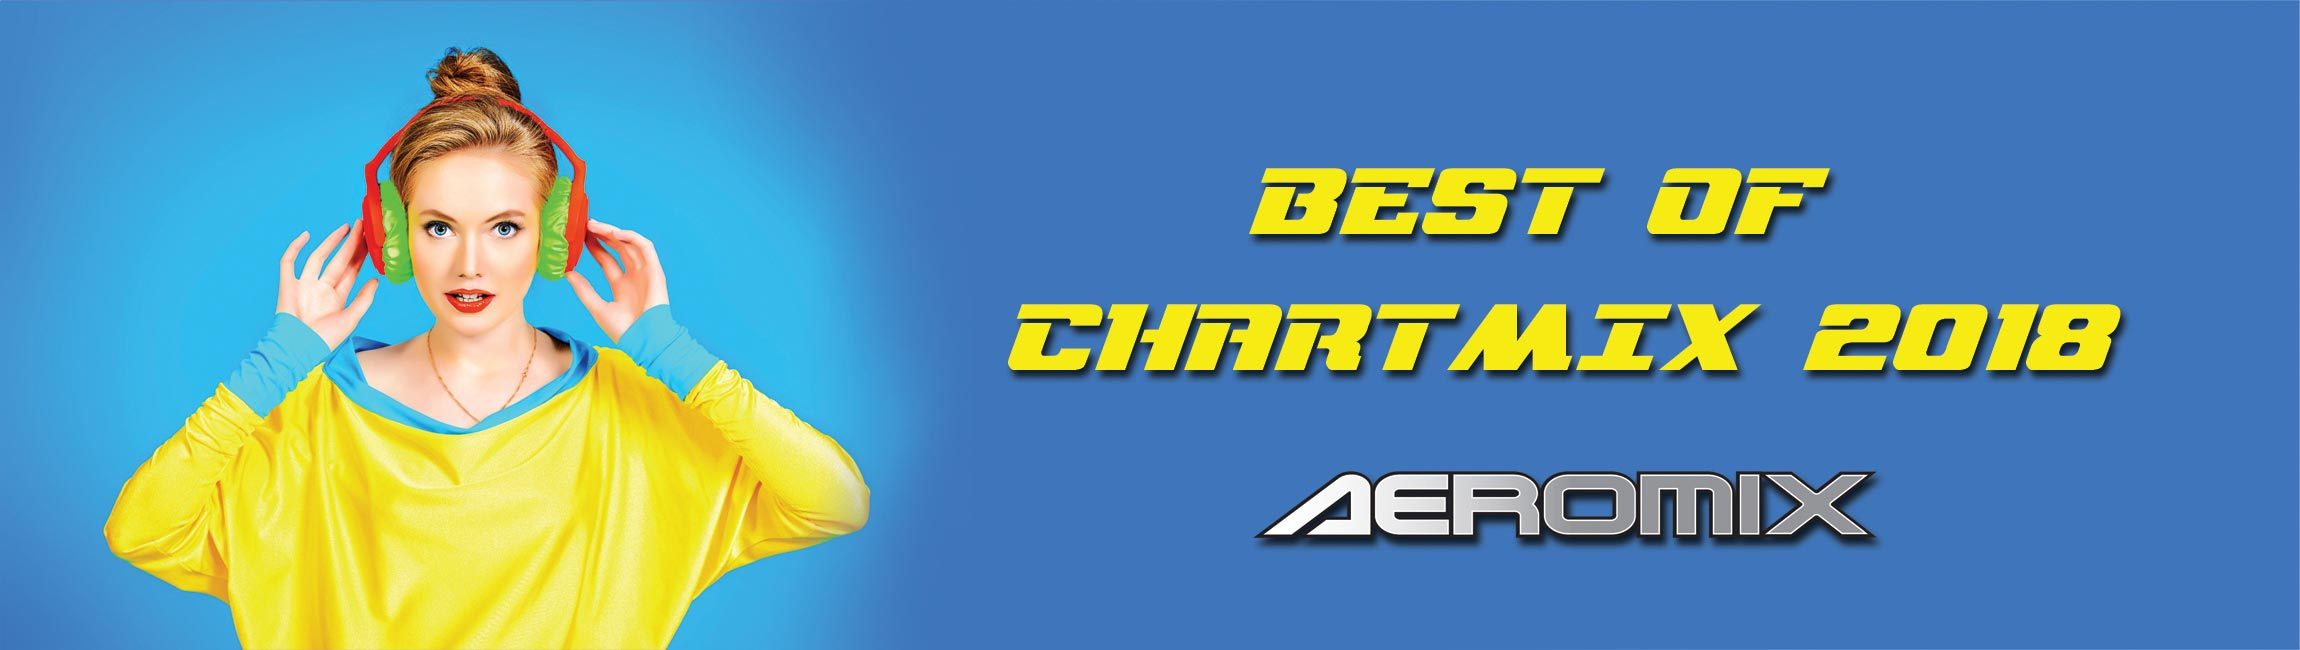 Aeromix Best Of Chartmix 2018 available now!